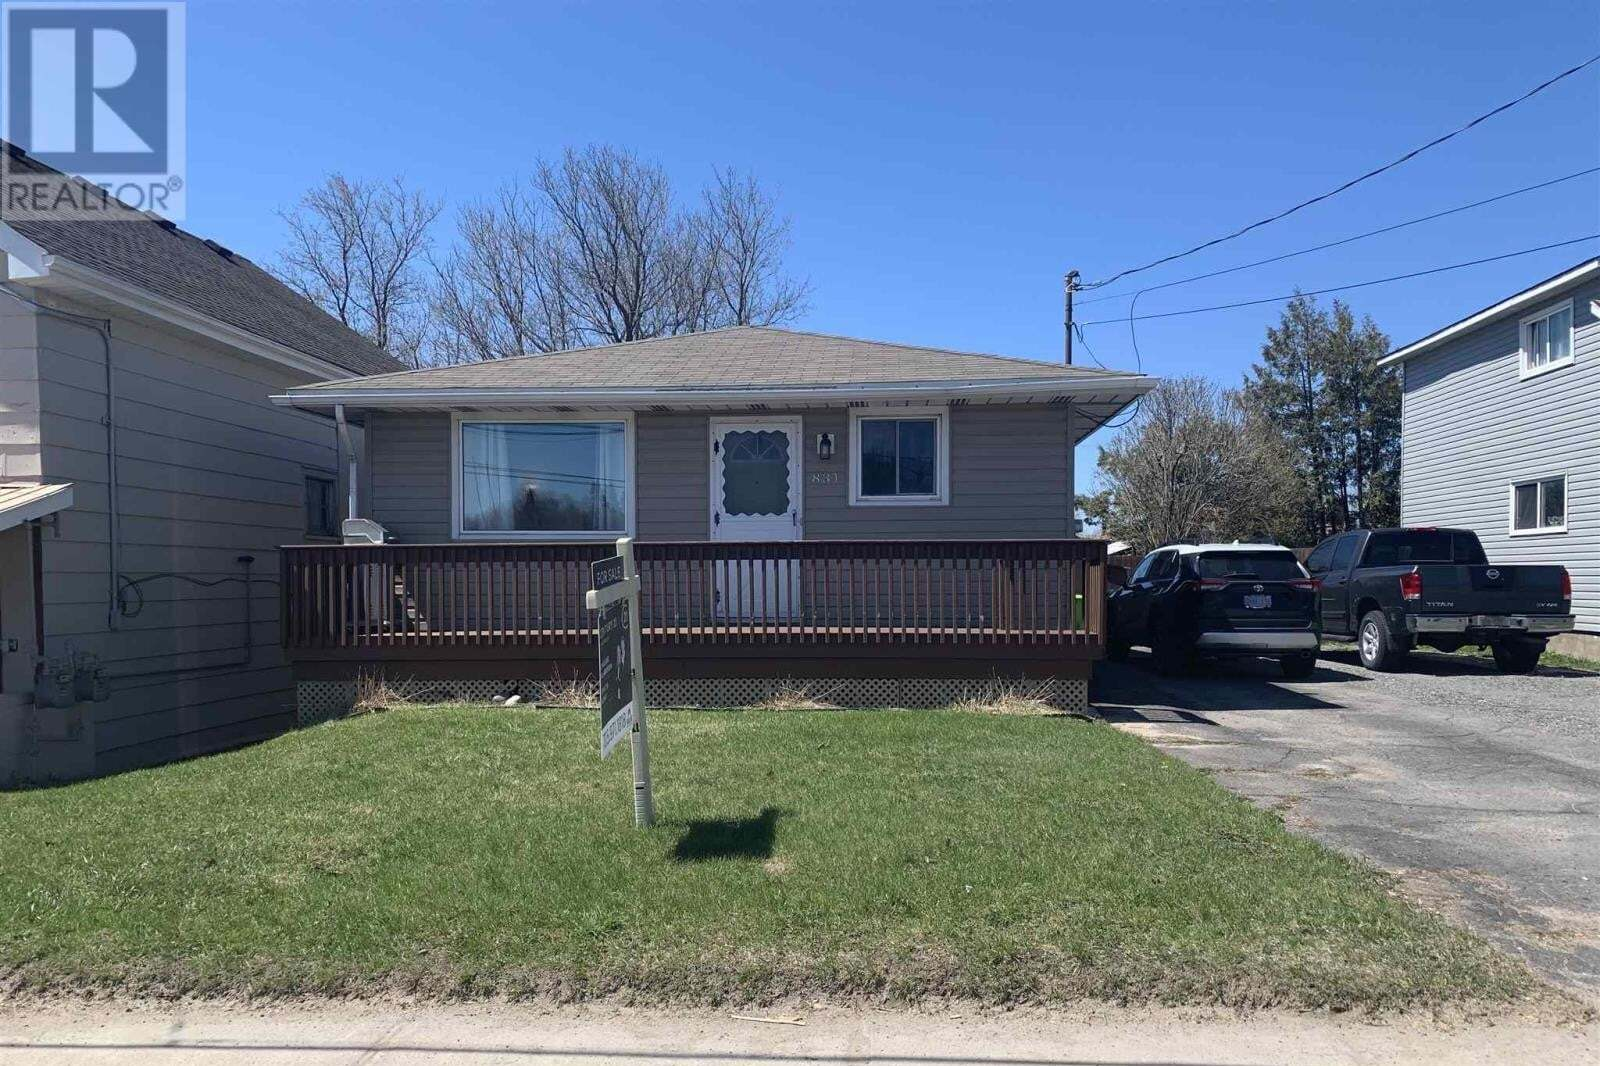 House for sale at 831 Peoples Rd Sault Ste. Marie Ontario - MLS: SM128260